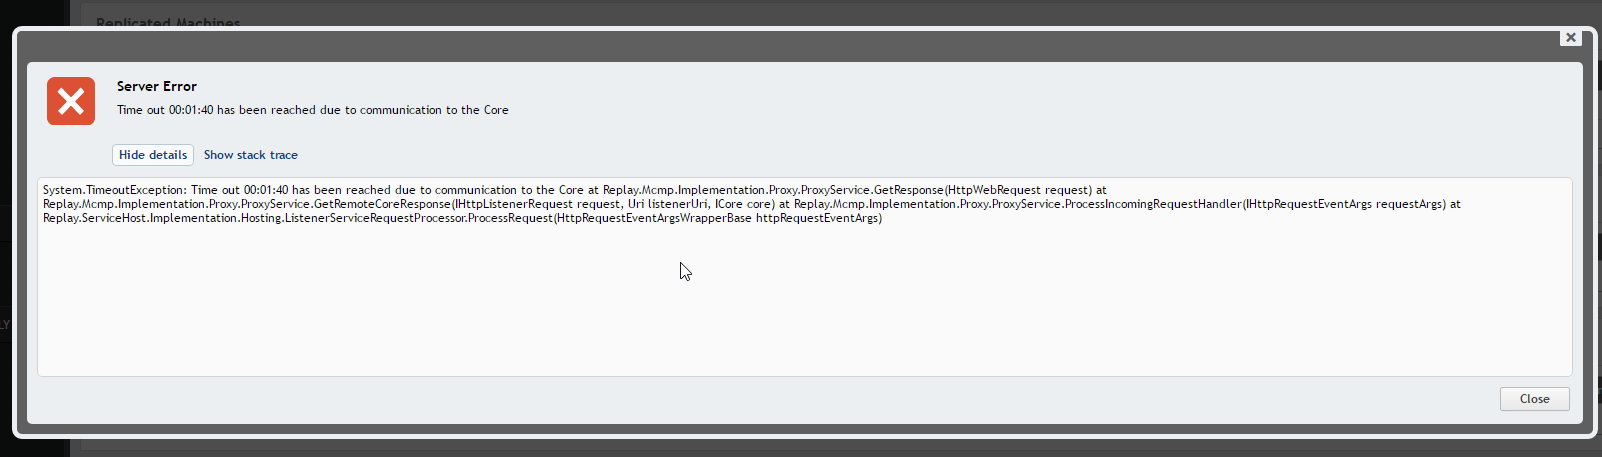 Rapid Recovery 6 1 - Server Error timeouts and how to delete